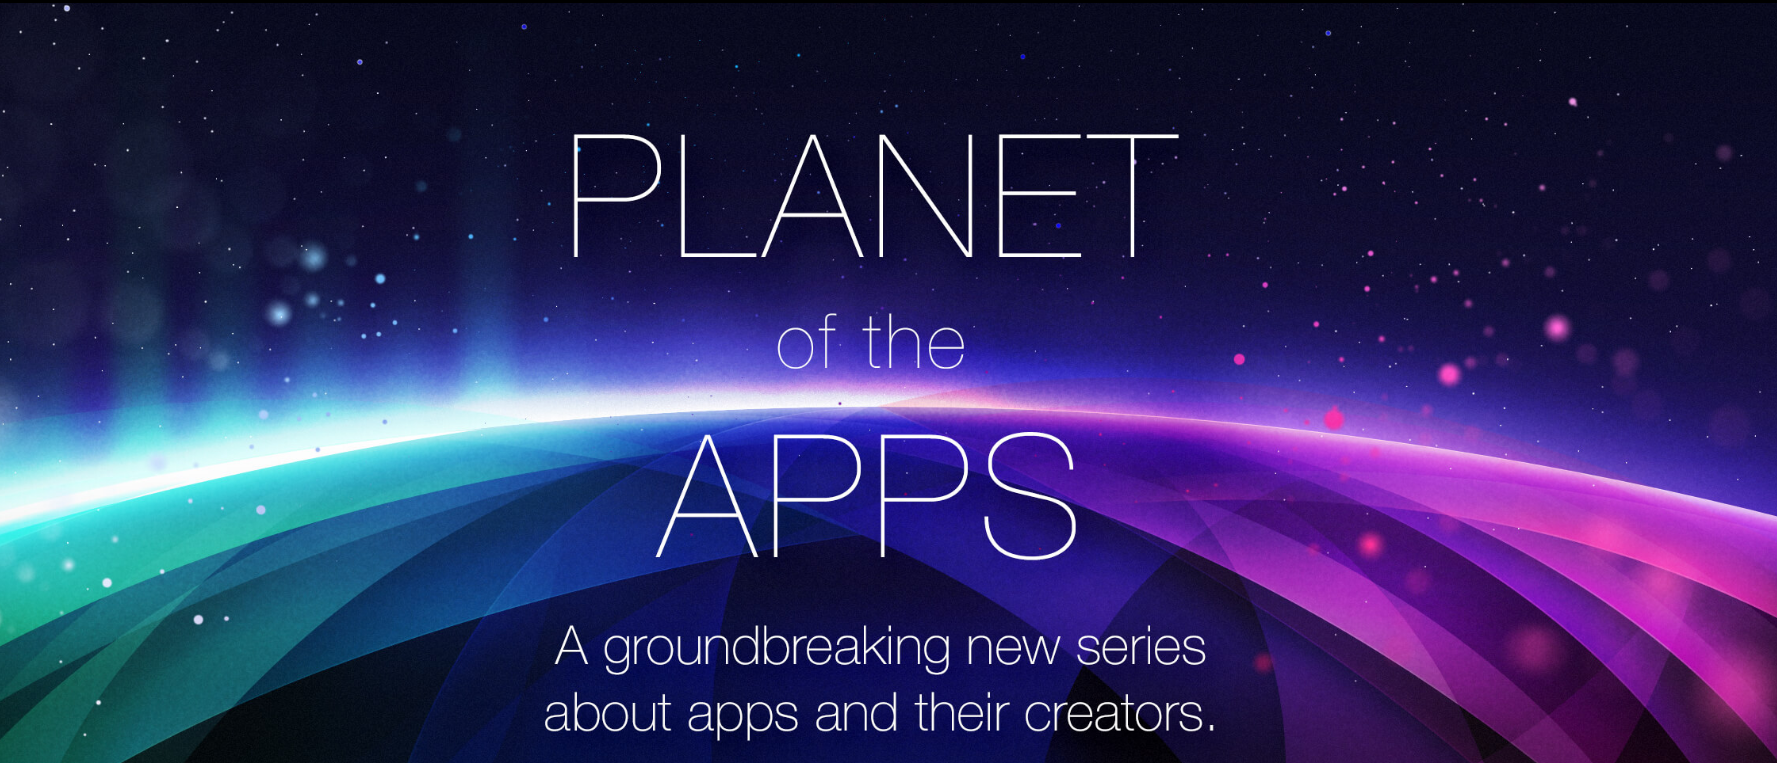 Apple's first reality TV series is of the Apps